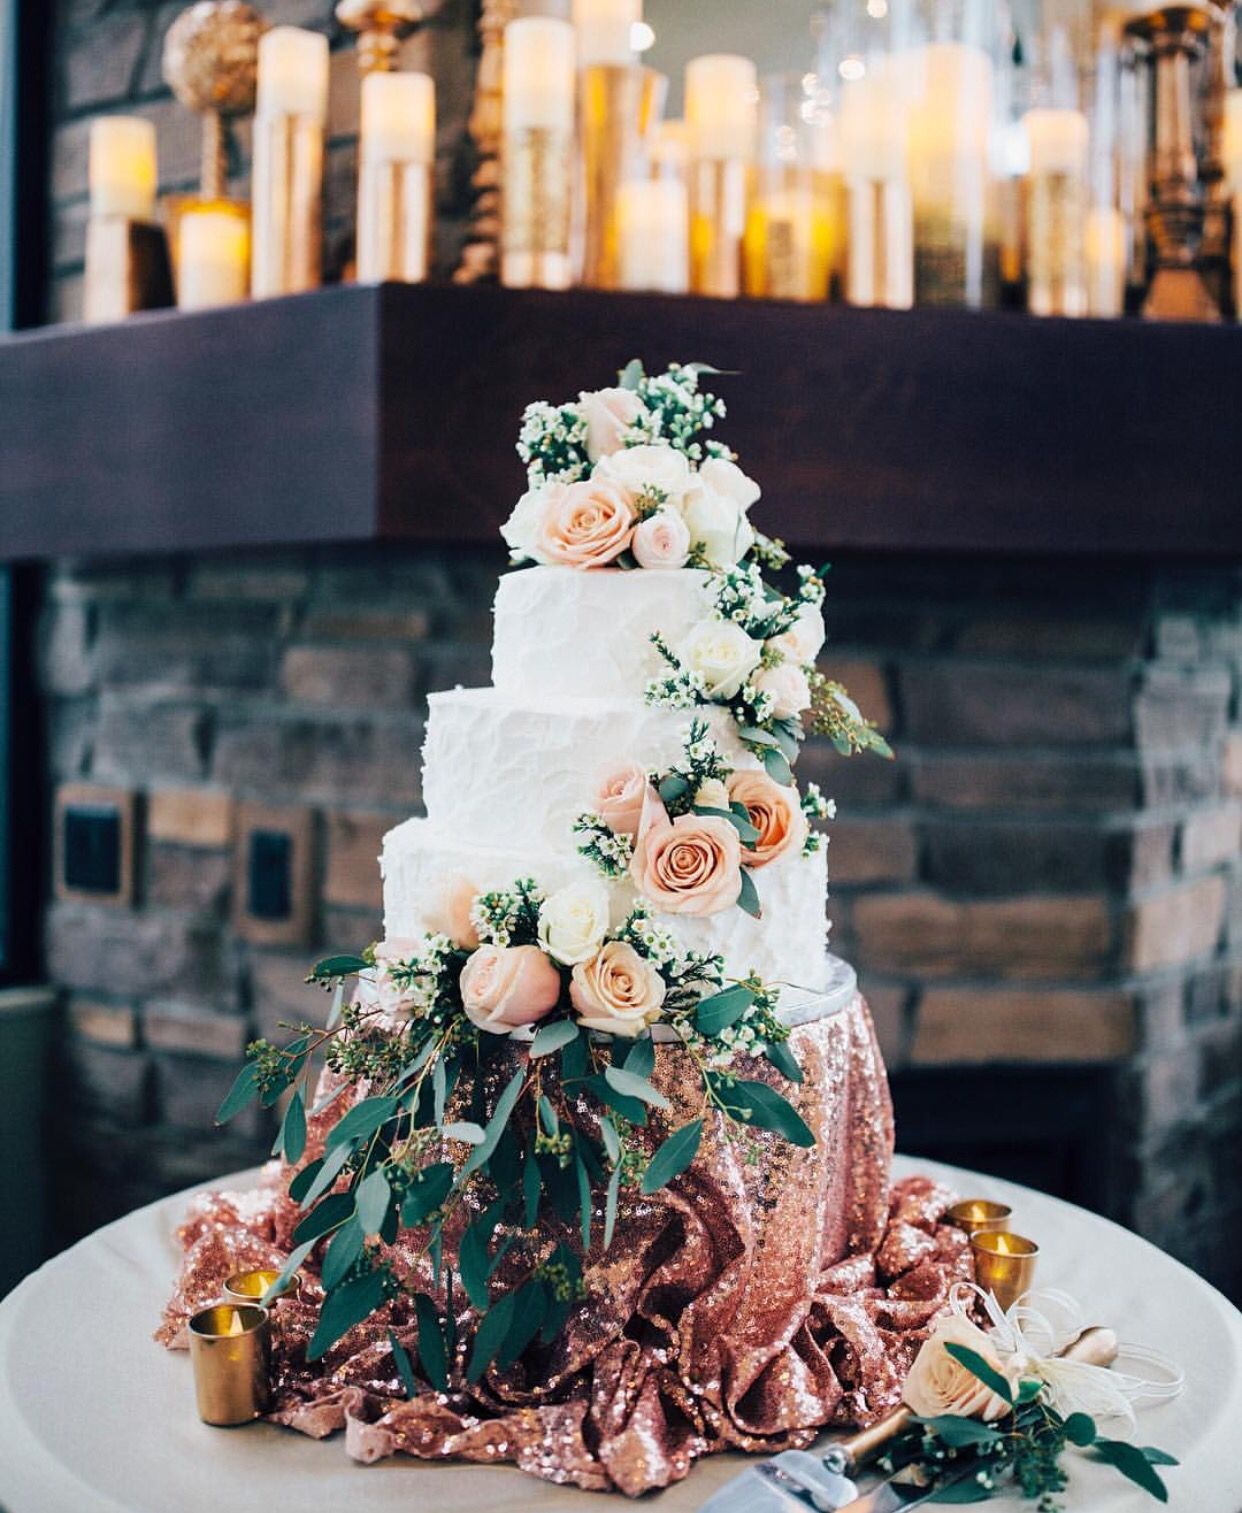 150 wedding cake from Walmart! Decorated with fresh